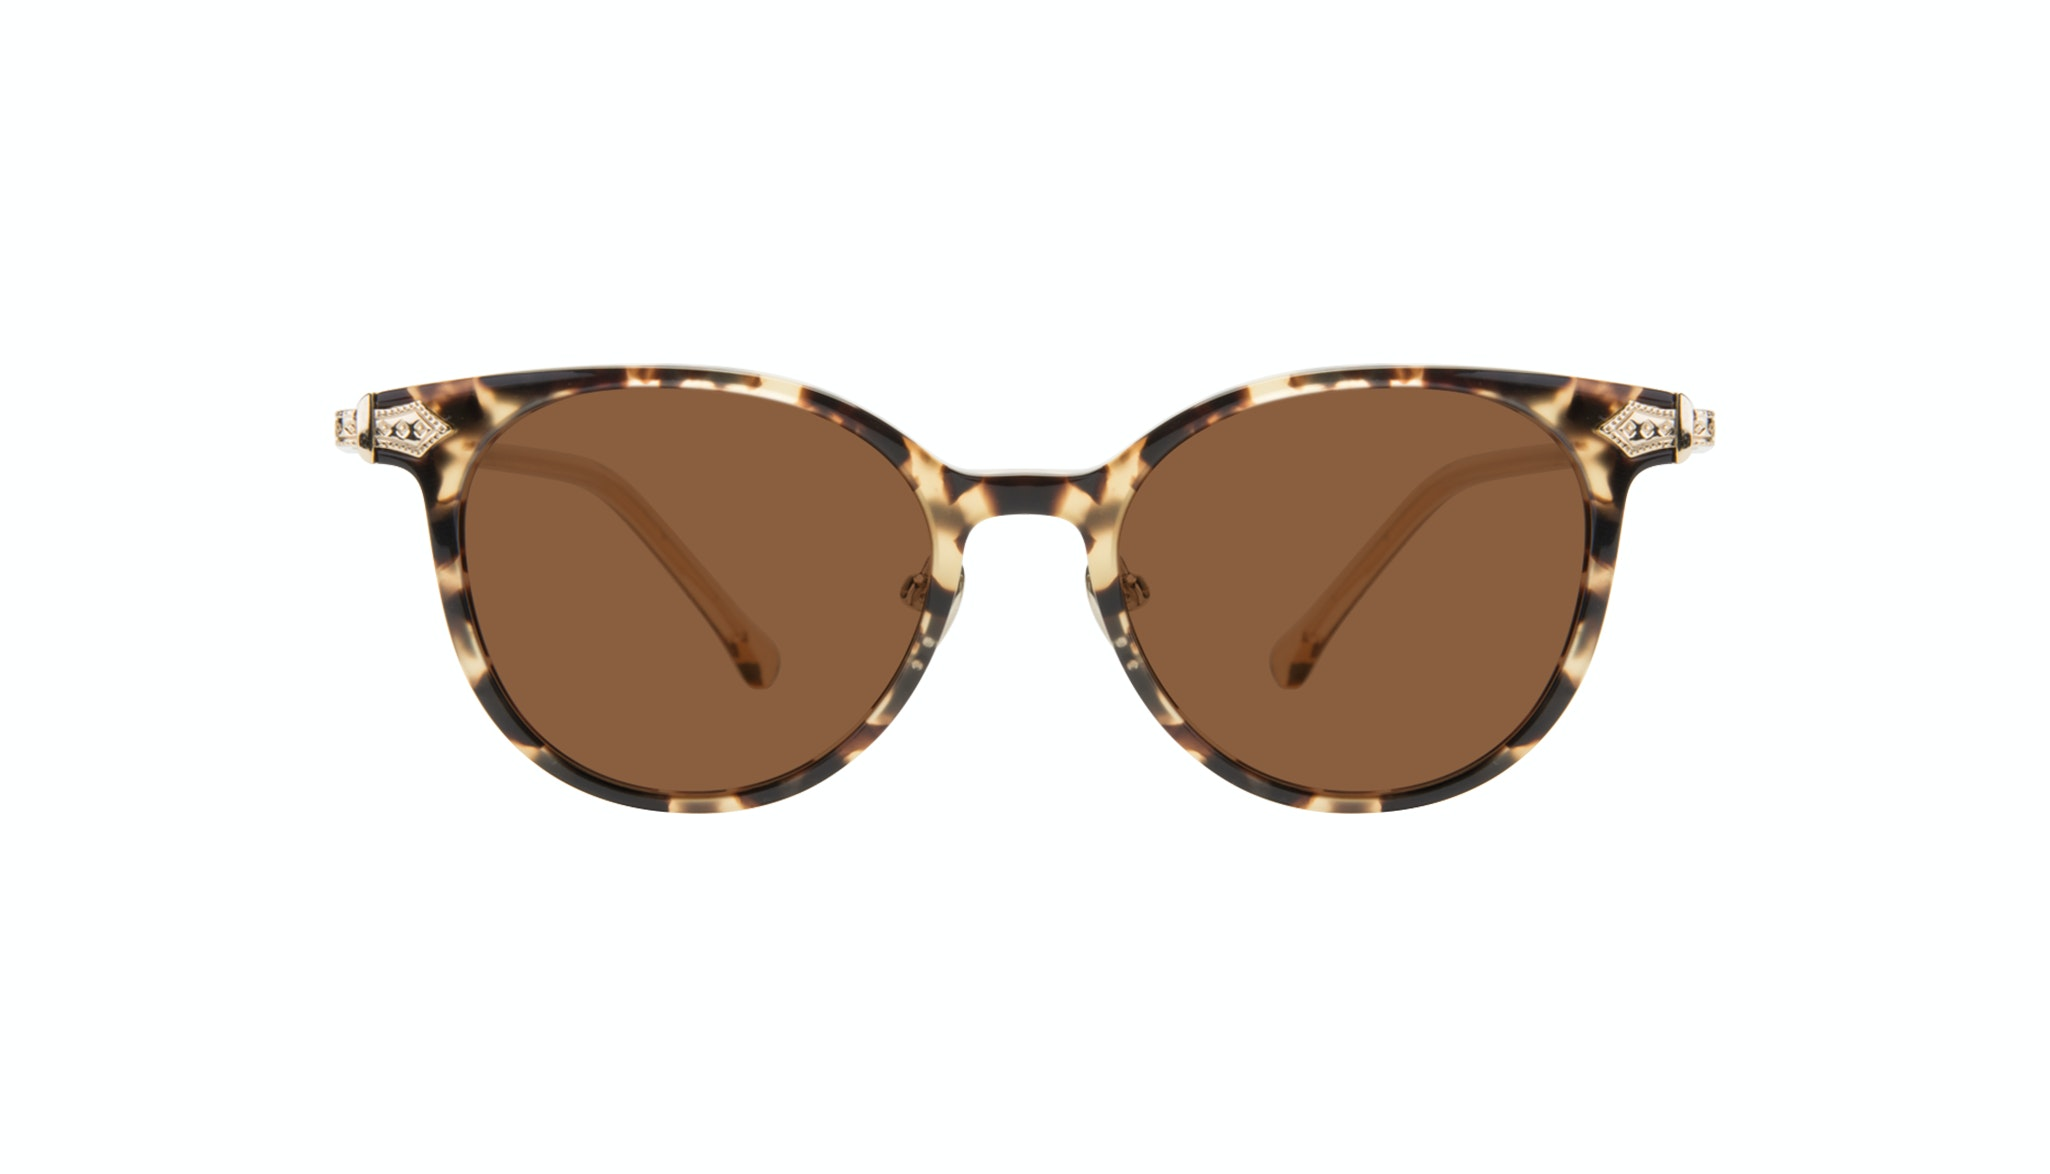 Affordable Fashion Glasses Round Sunglasses Women Gem Golden Chip Front